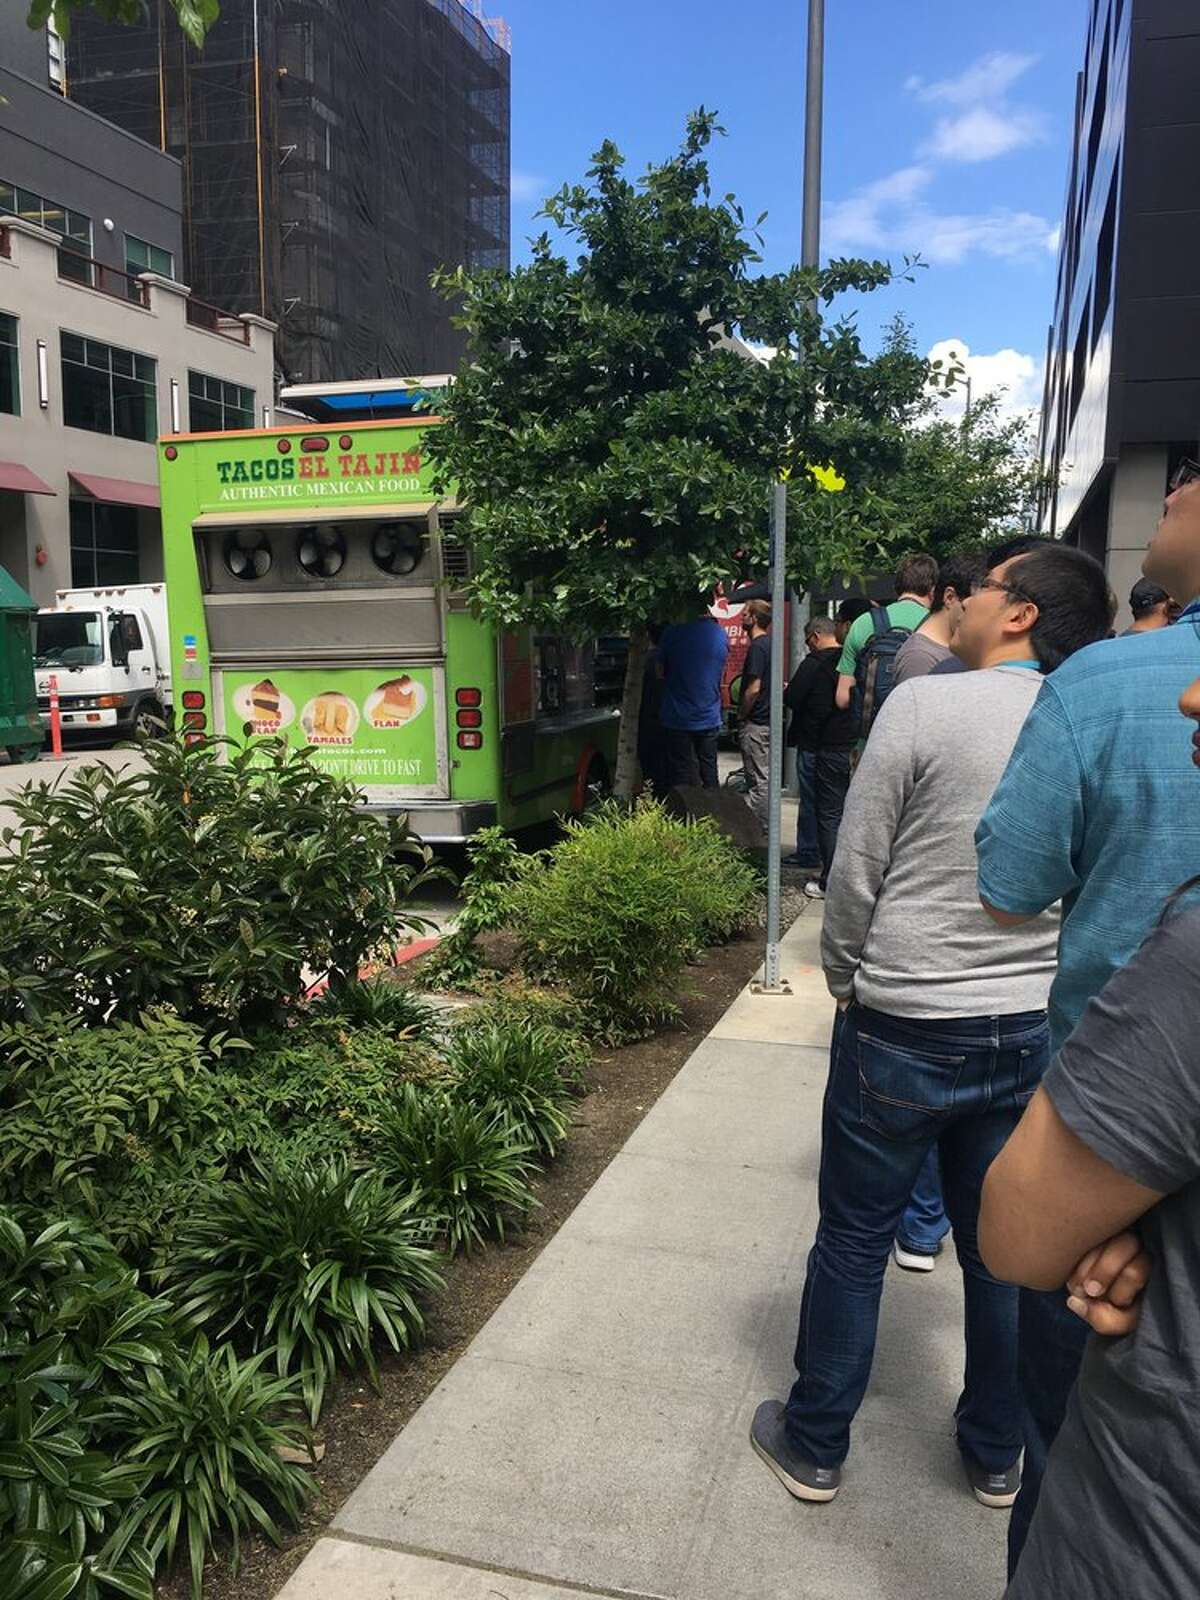 The lunchtime line at the Tacos ElTajinfood truck in Seattle, Wash.